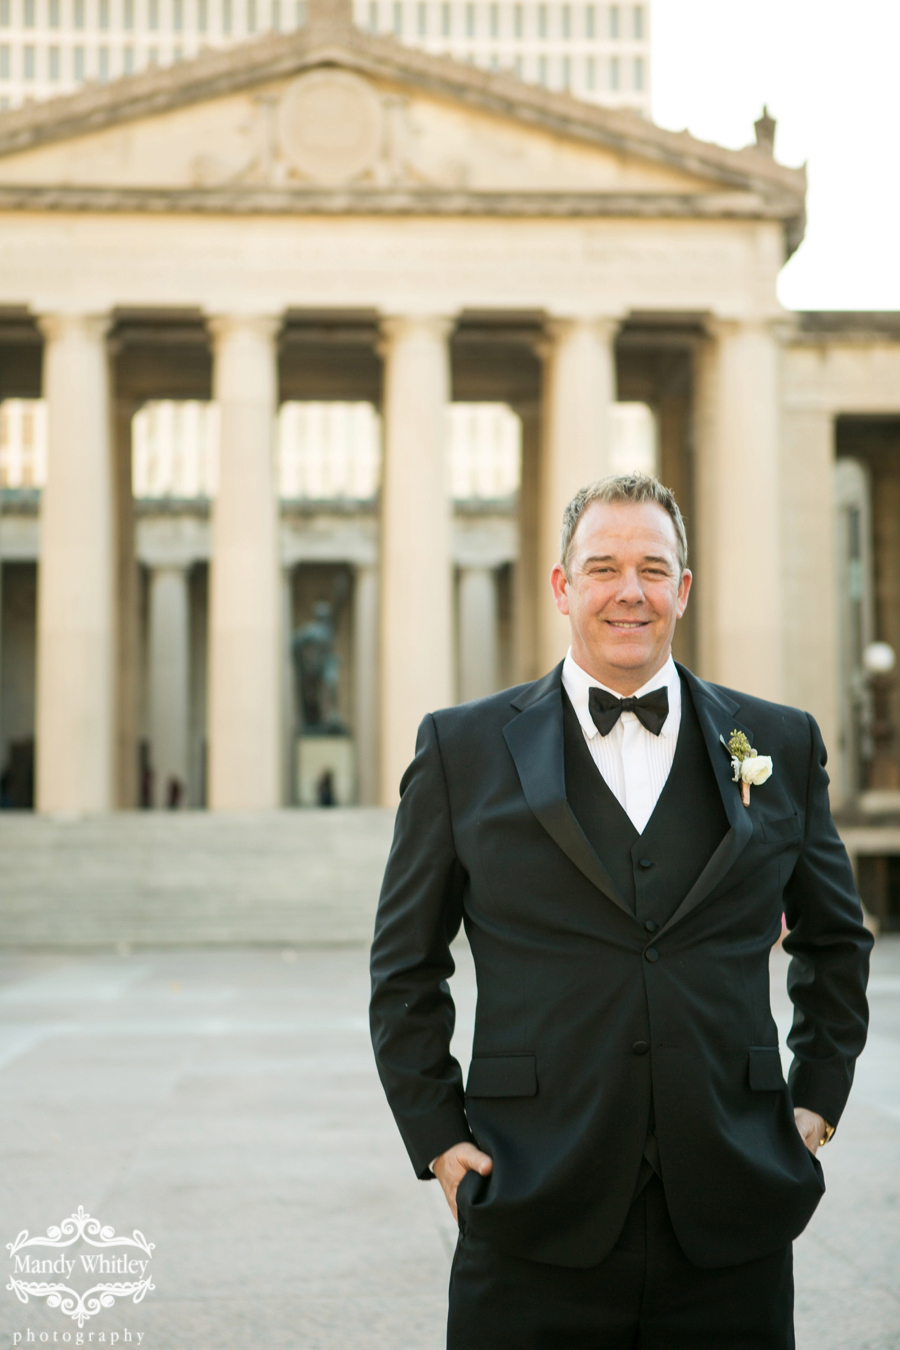 Nashville Wedding at the Hermitage Hotel and War Memorial by Mandy Whitley Photography